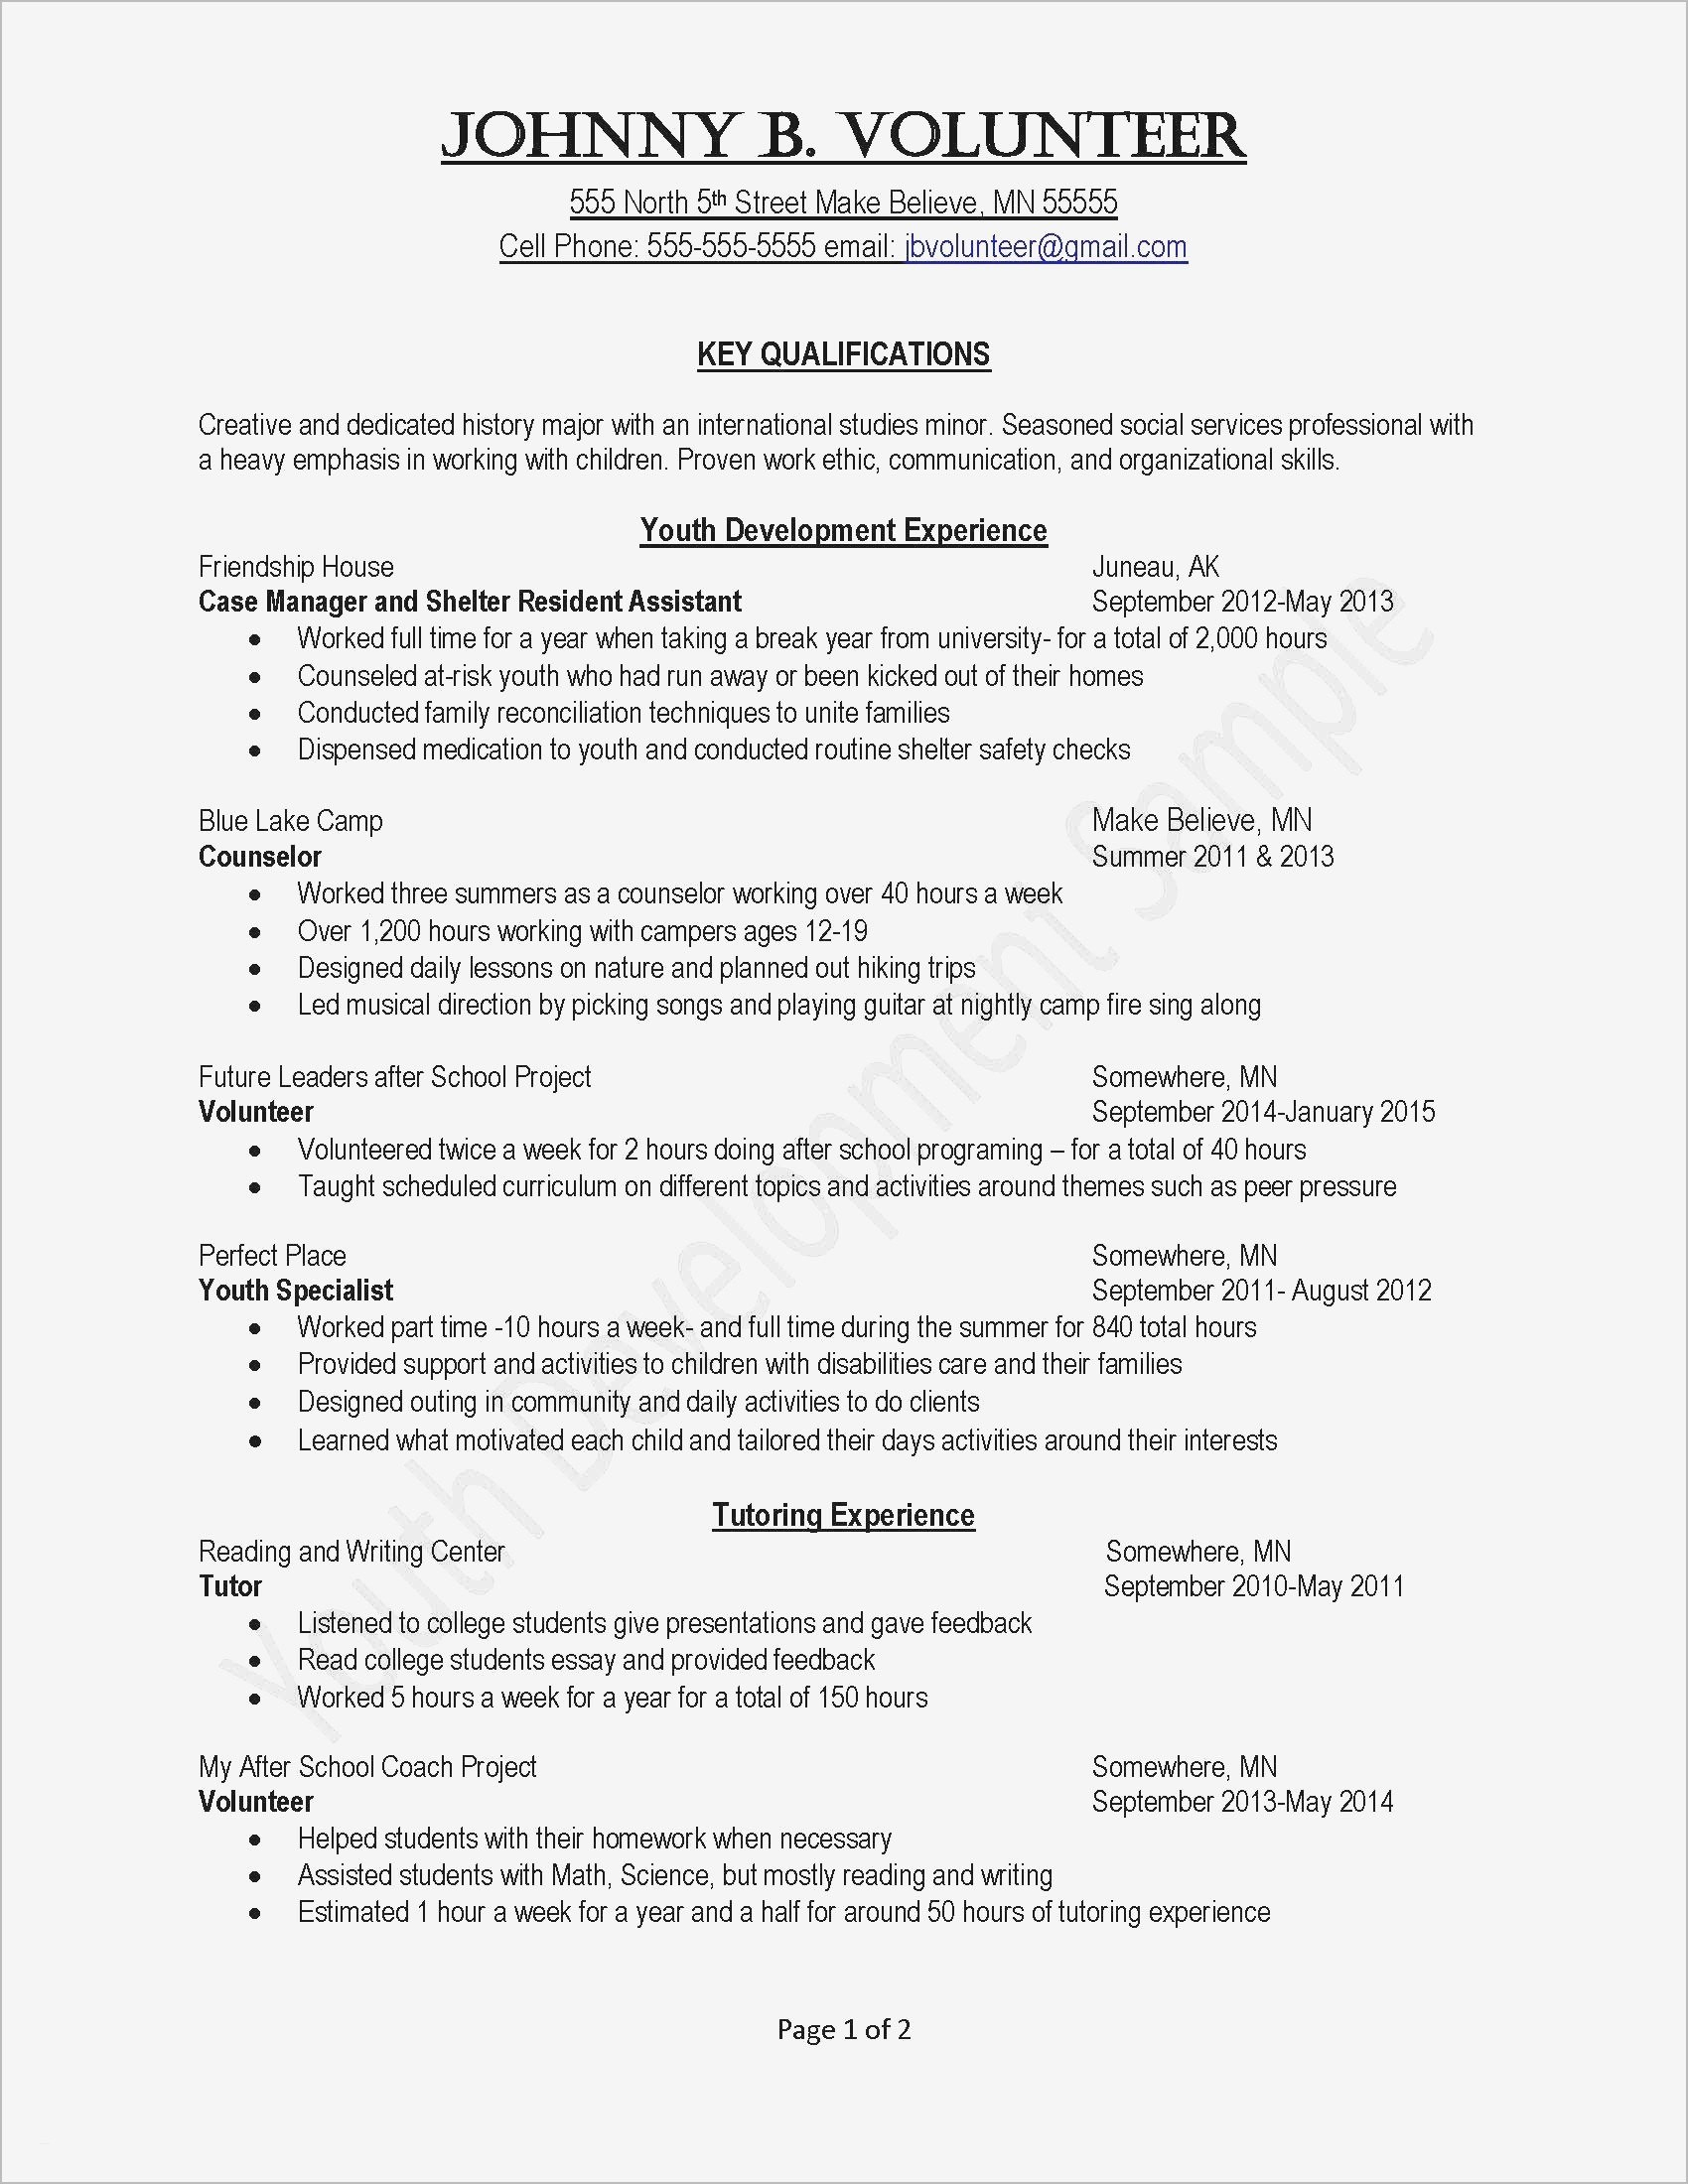 Invoice Cover Letter Template - Personal Resume Template Free Awesome Job Fer Letter Template Us